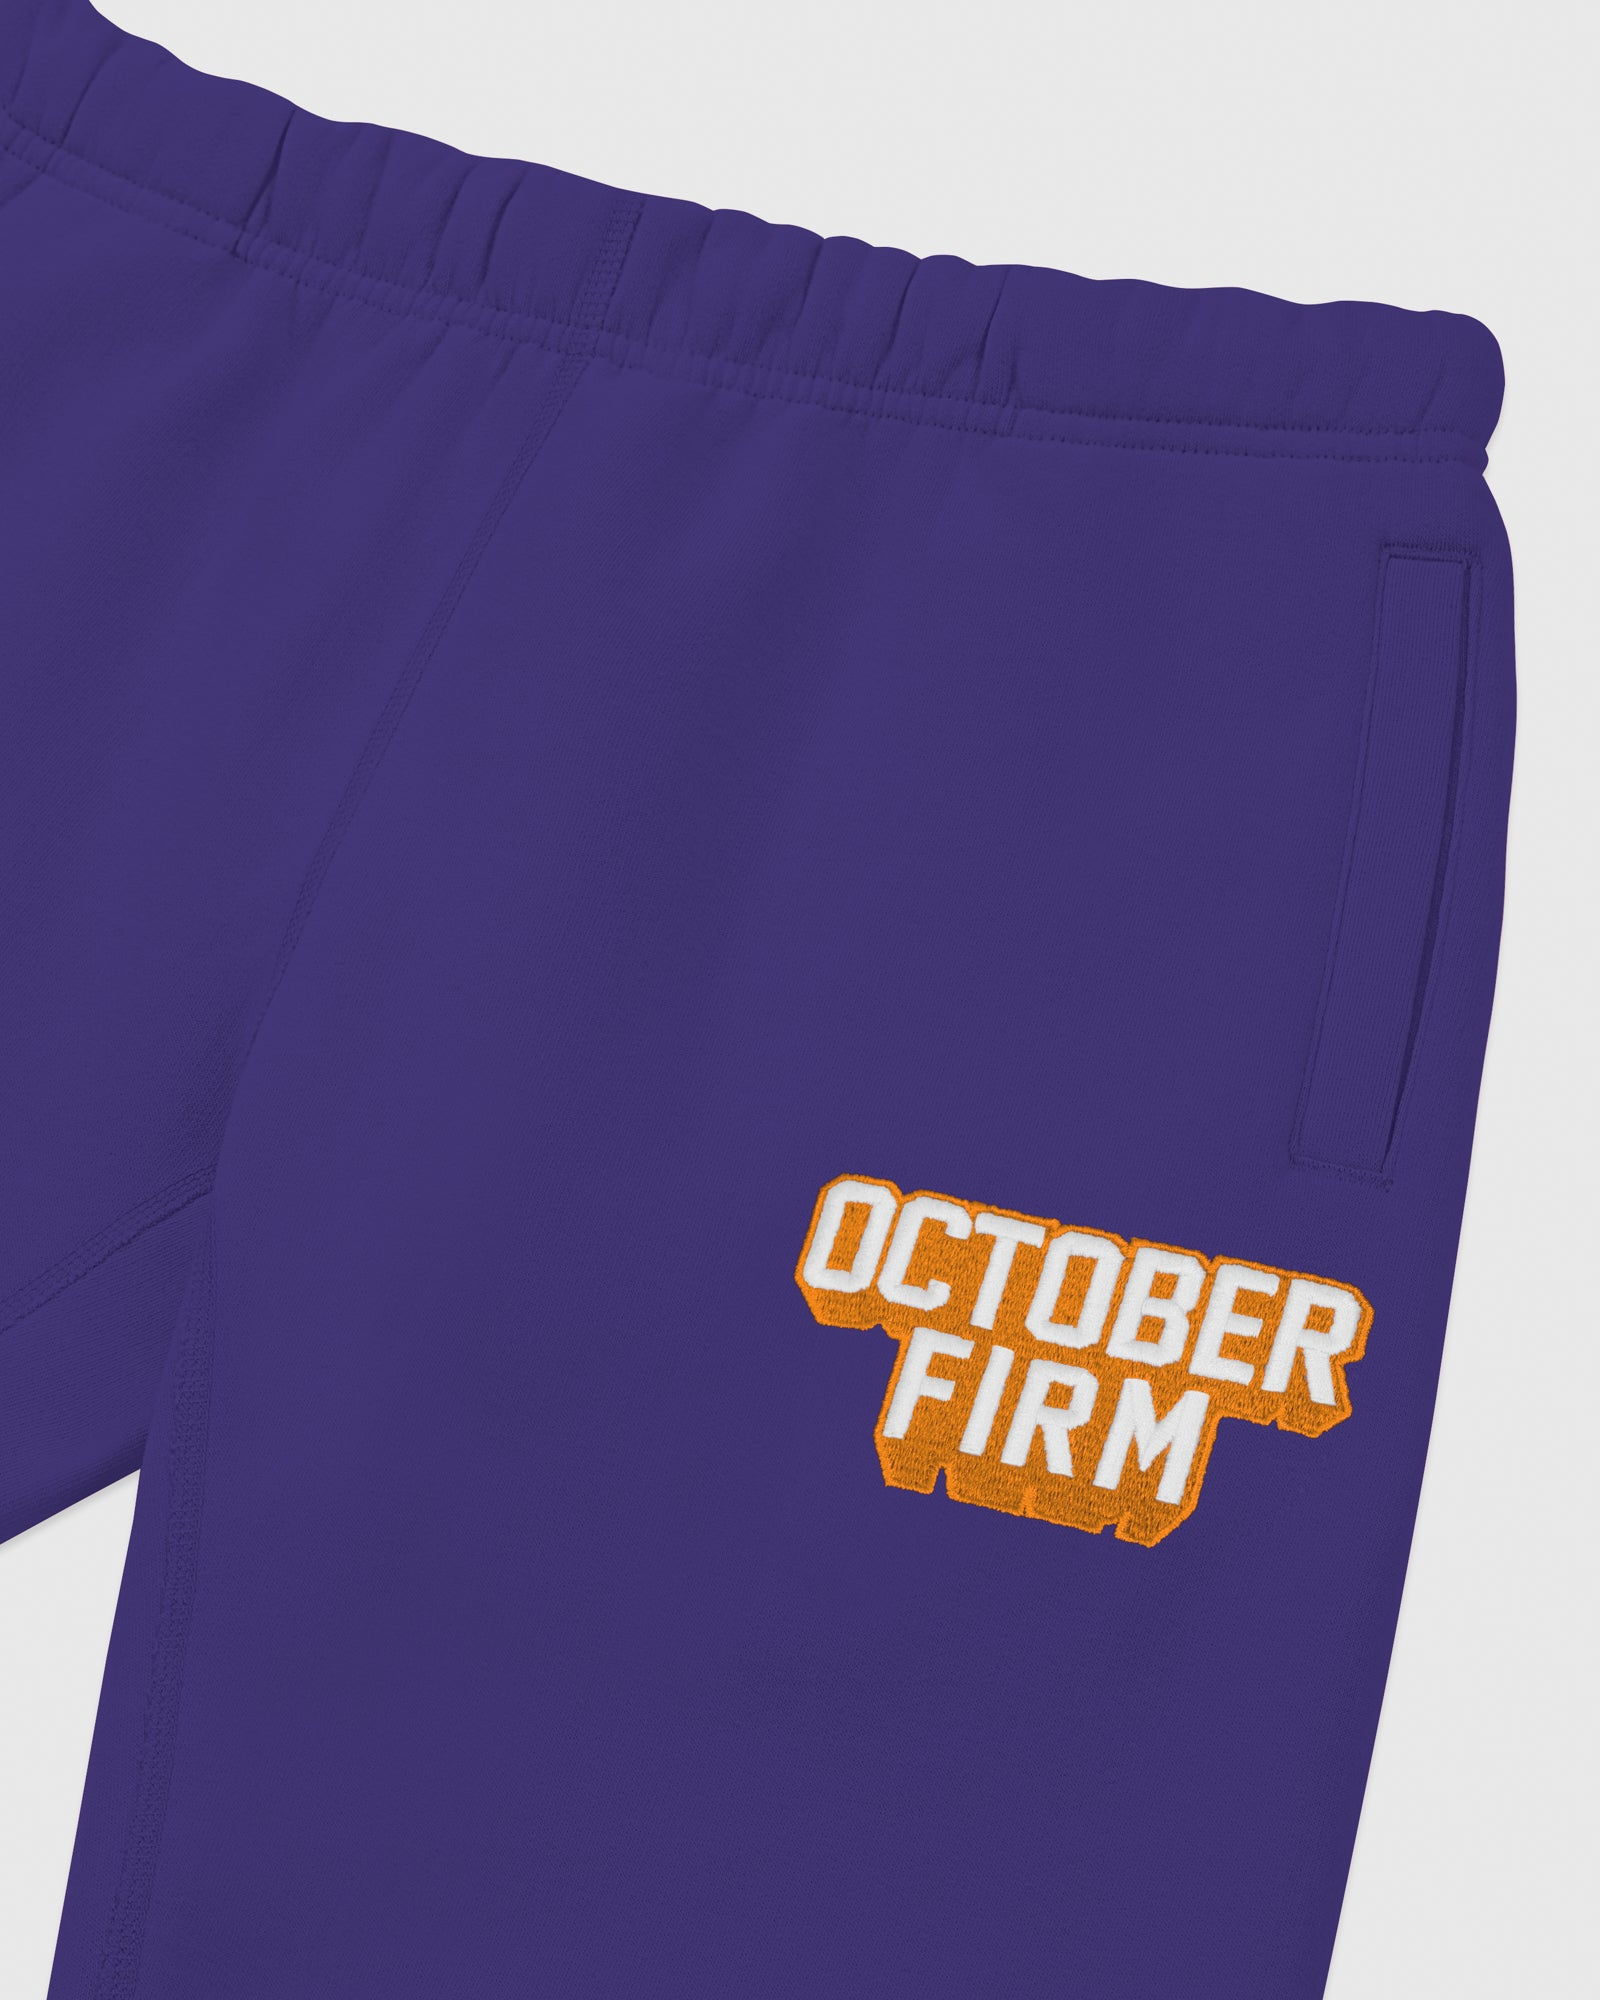 OCTOBER FIRM SHADOW SWEATPANT - PURPLE IMAGE #3